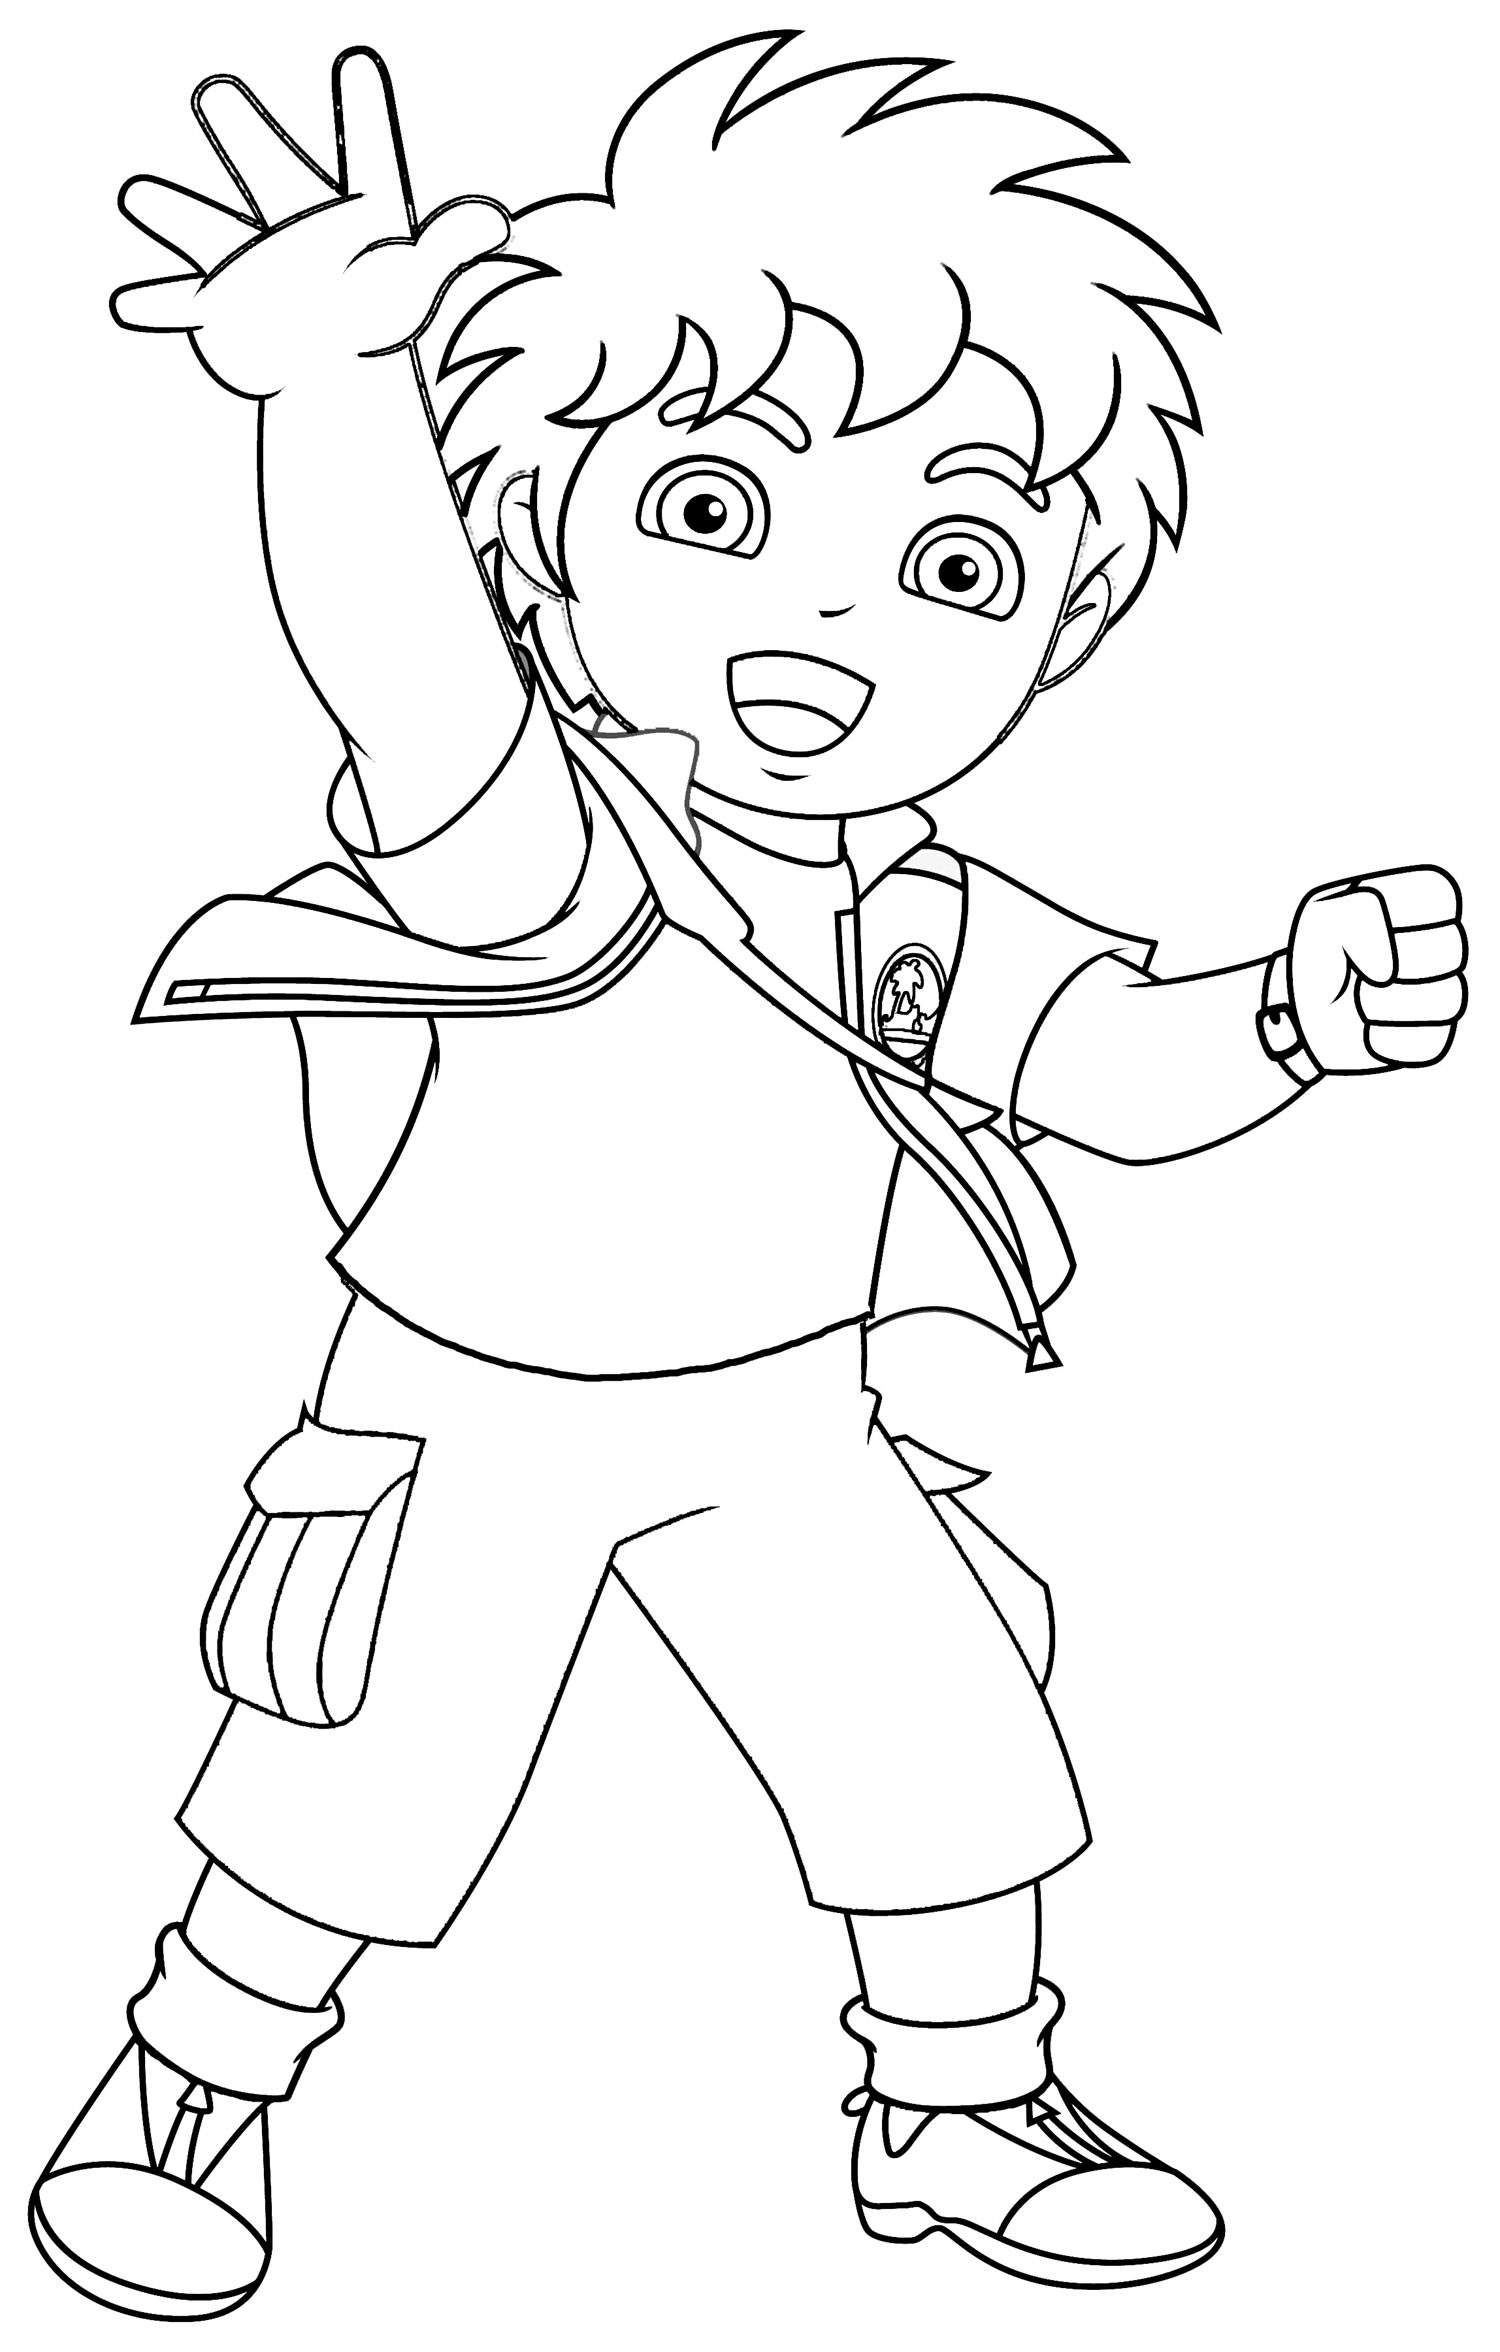 nick jr coloring pages 8 coloring kids